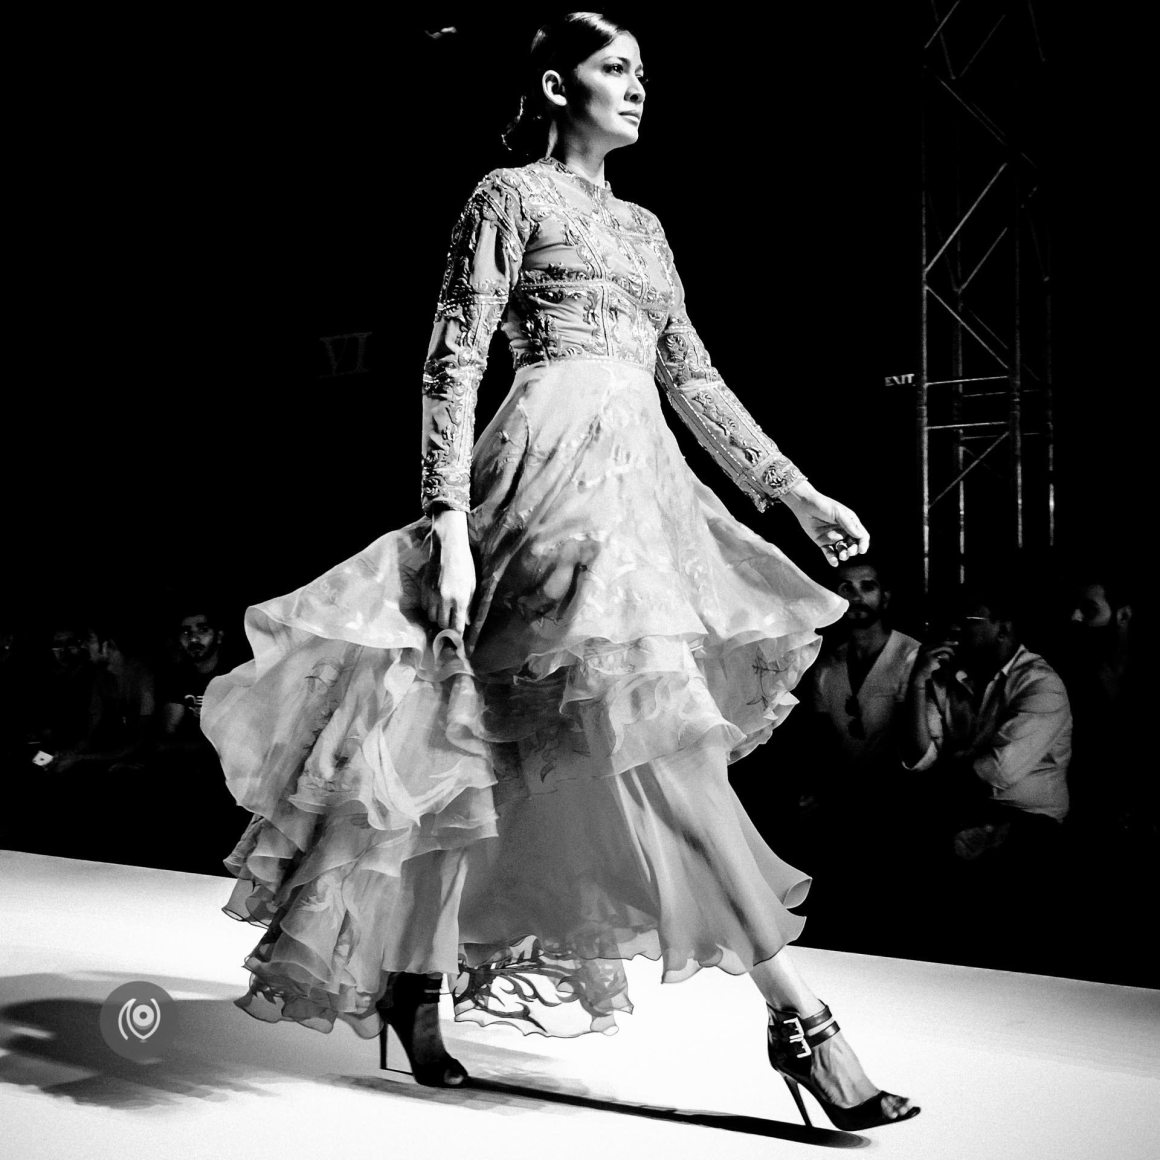 Kartikeya, Amazon India Fashion Week Spring Summer 2016 #AIFWSS16 #EyesForFashion Naina.co Luxury & Lifestyle, Photographer Storyteller, Blogger